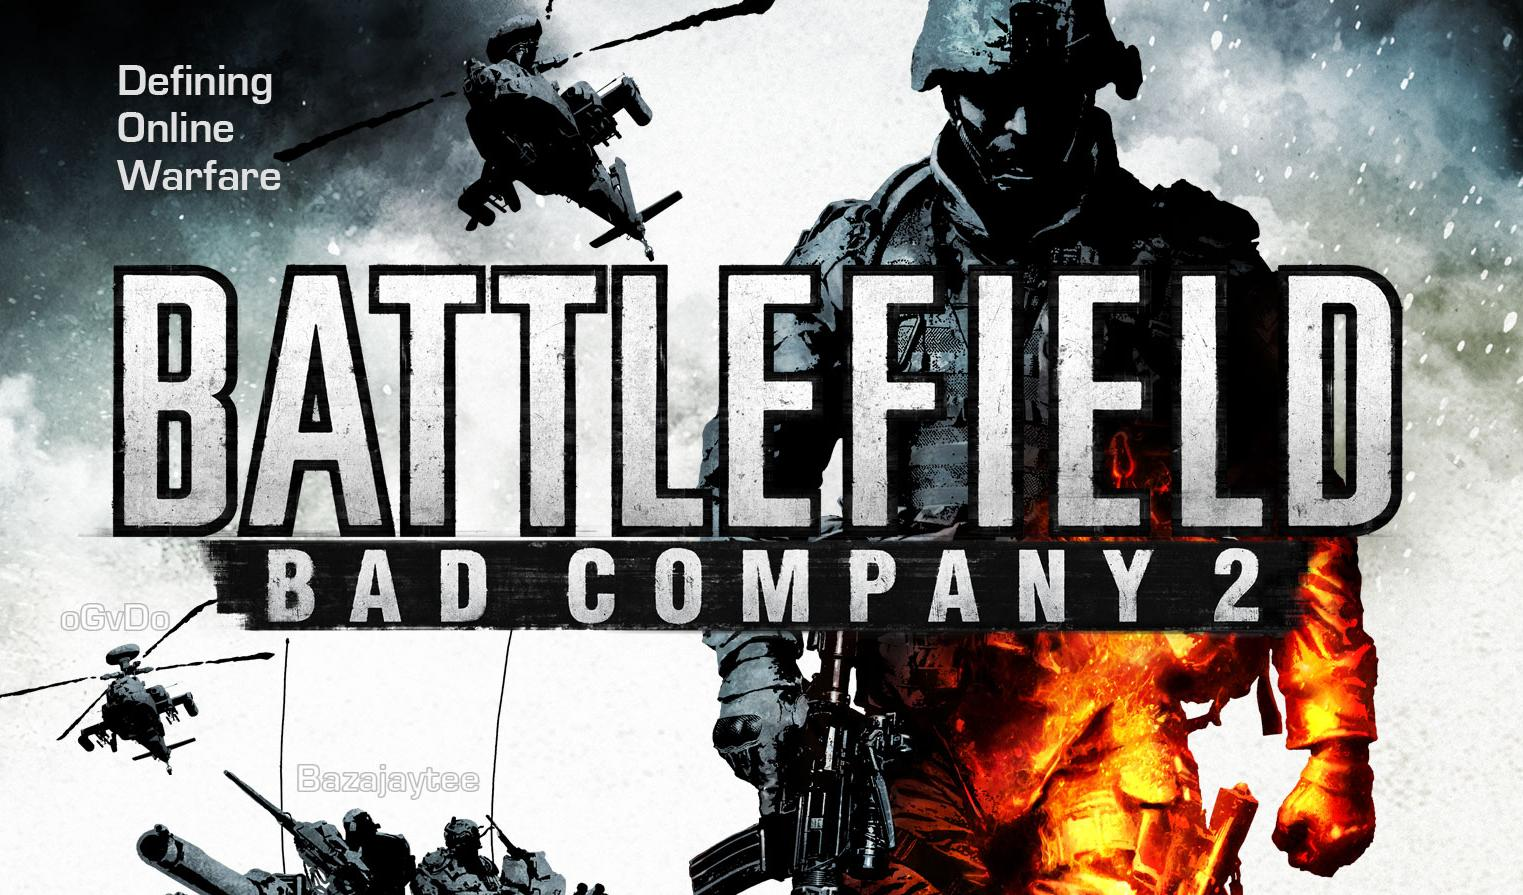 Battlefield: Bad Company 2 [ORIGIN]